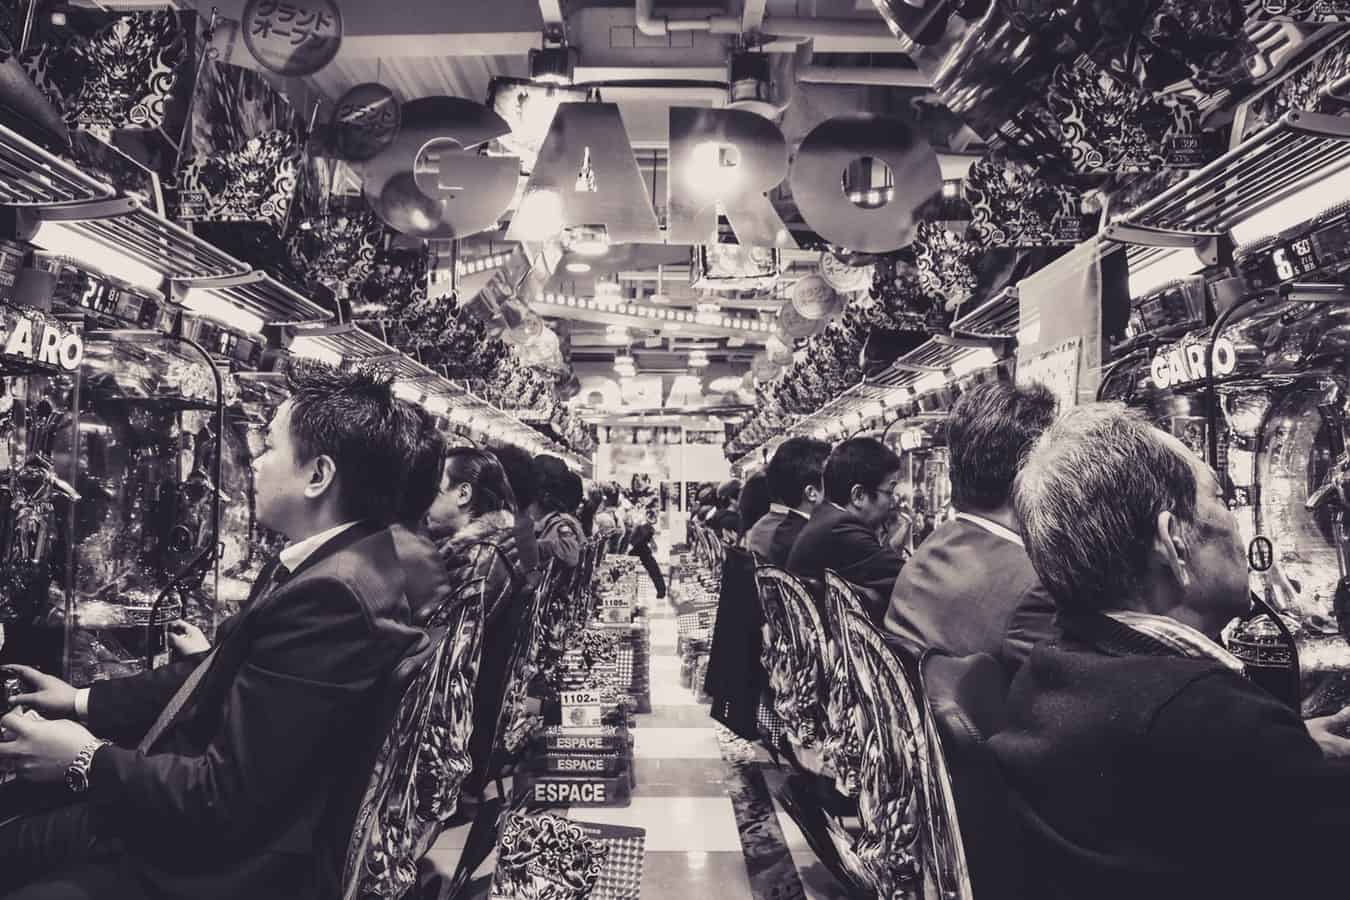 Pachinko Halle in Japan